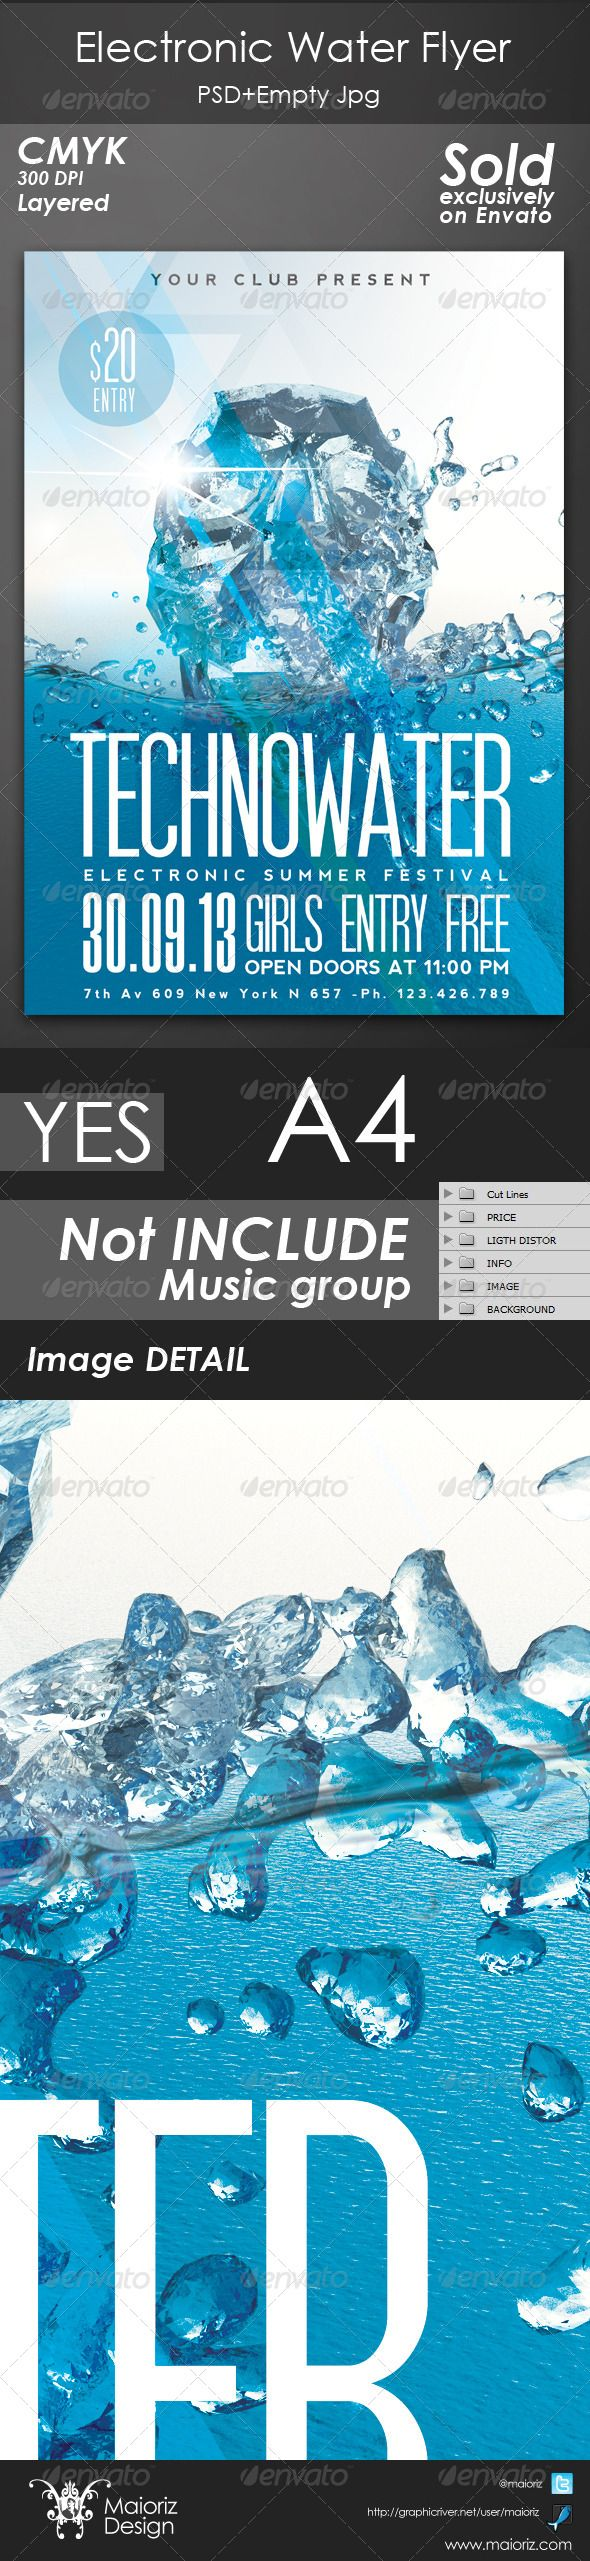 Poster design background psd - Electronic Water Flyer